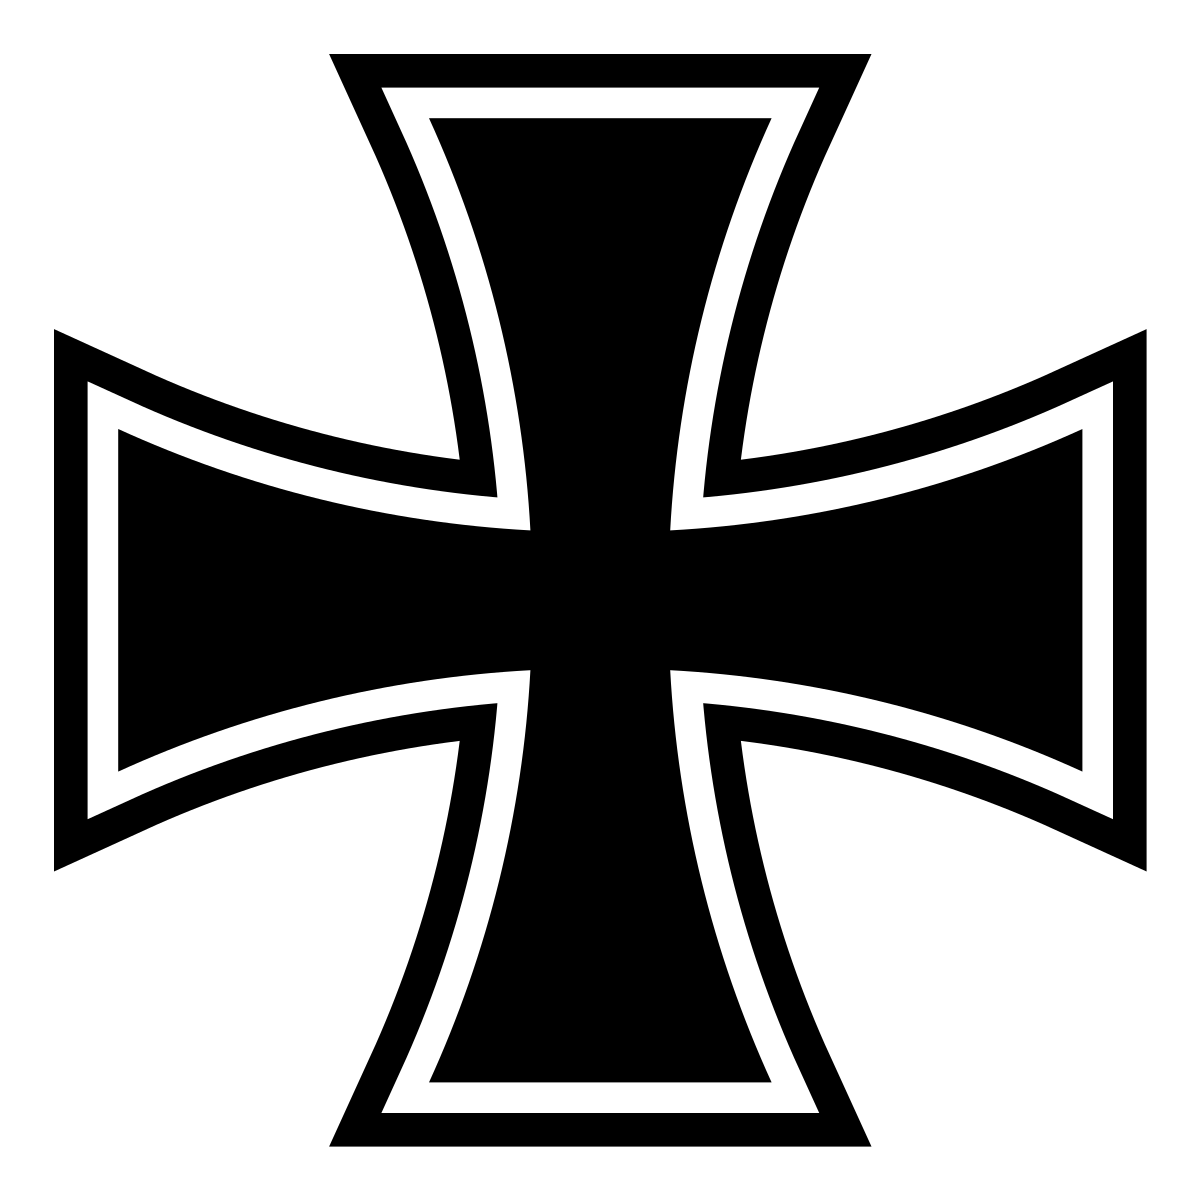 Destroyed nazi flag png. Iron cross wikipedia